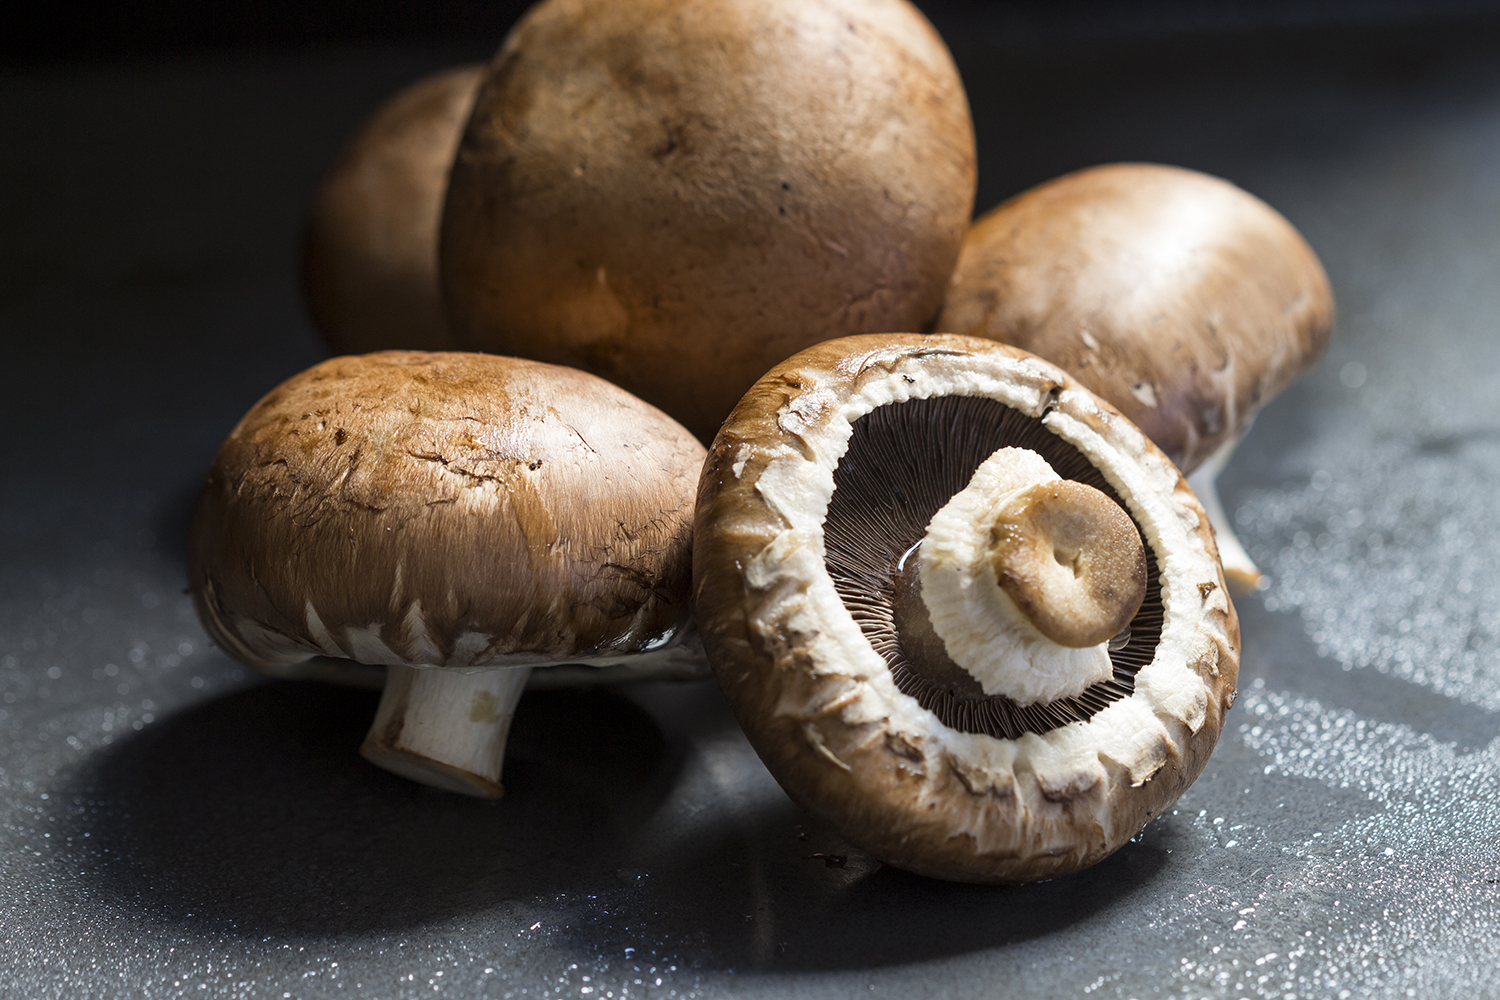 Eating More Mushrooms Could Improve Your Mental Health—Here's Why